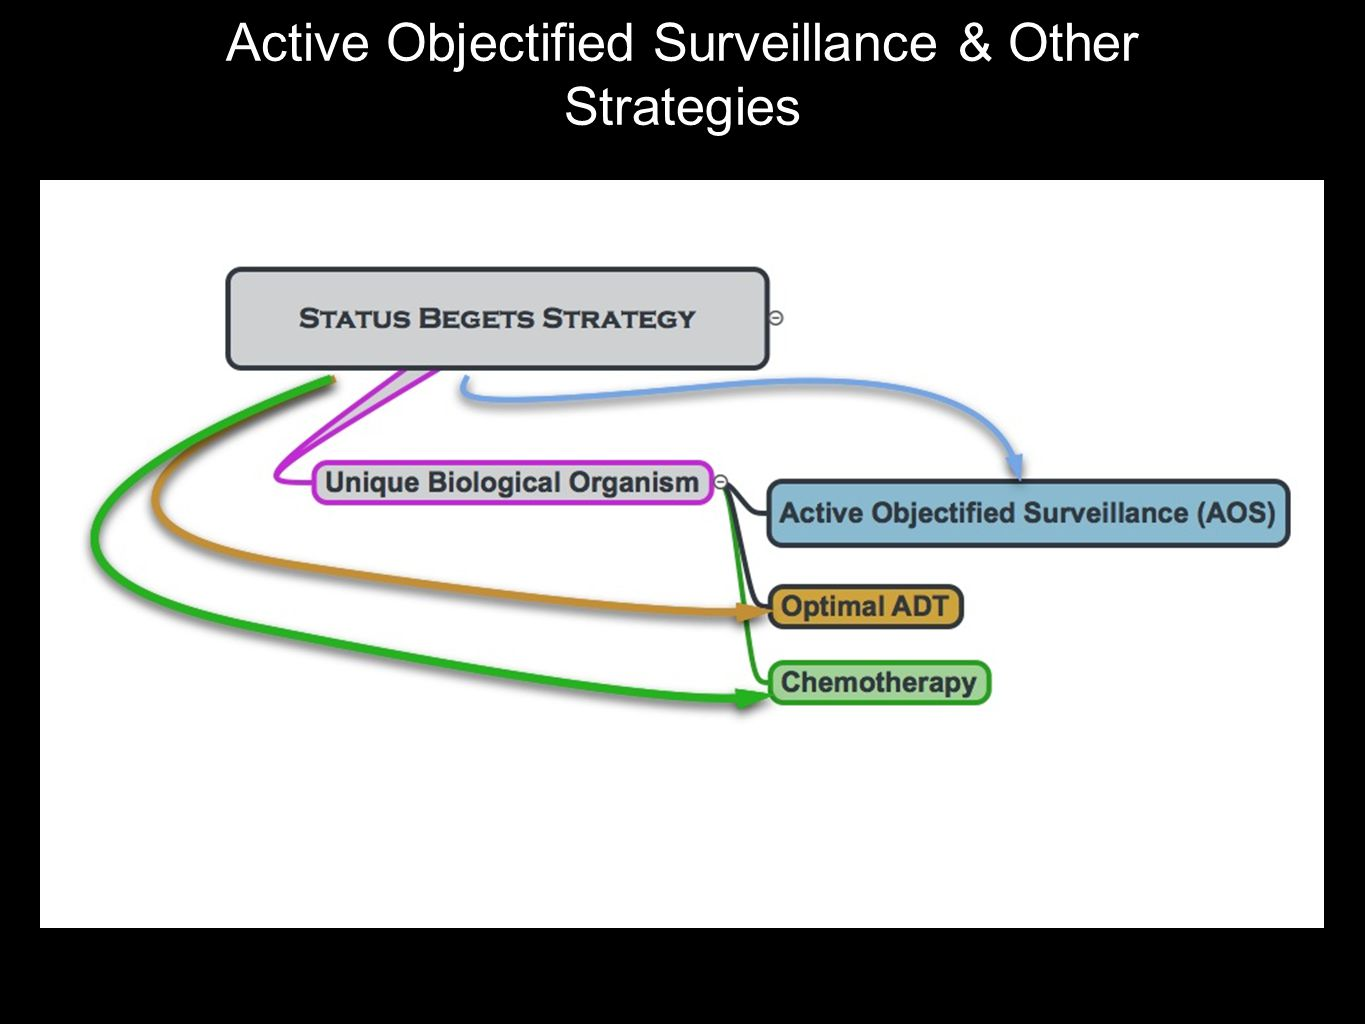 Active Objectified Surveillance & Other Strategies